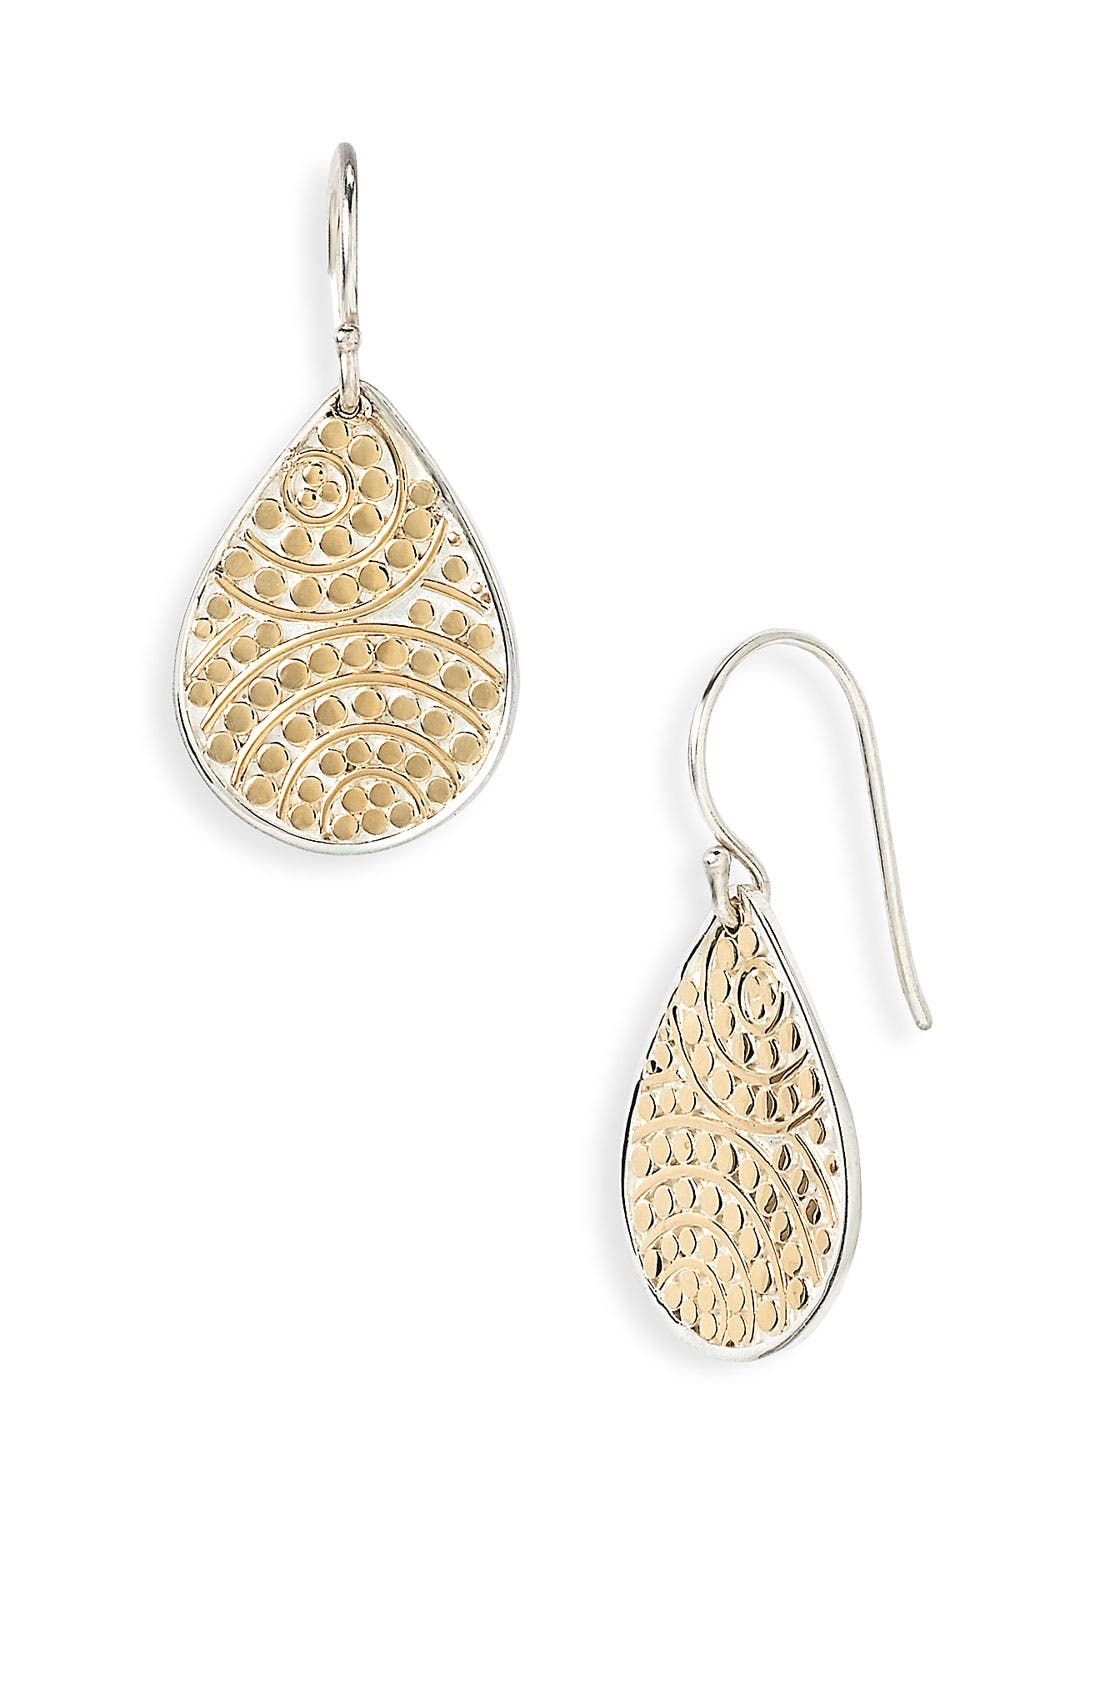 Alternate Image 1 Selected - Anna Beck 'Rajua' Small Teardrop Earrings